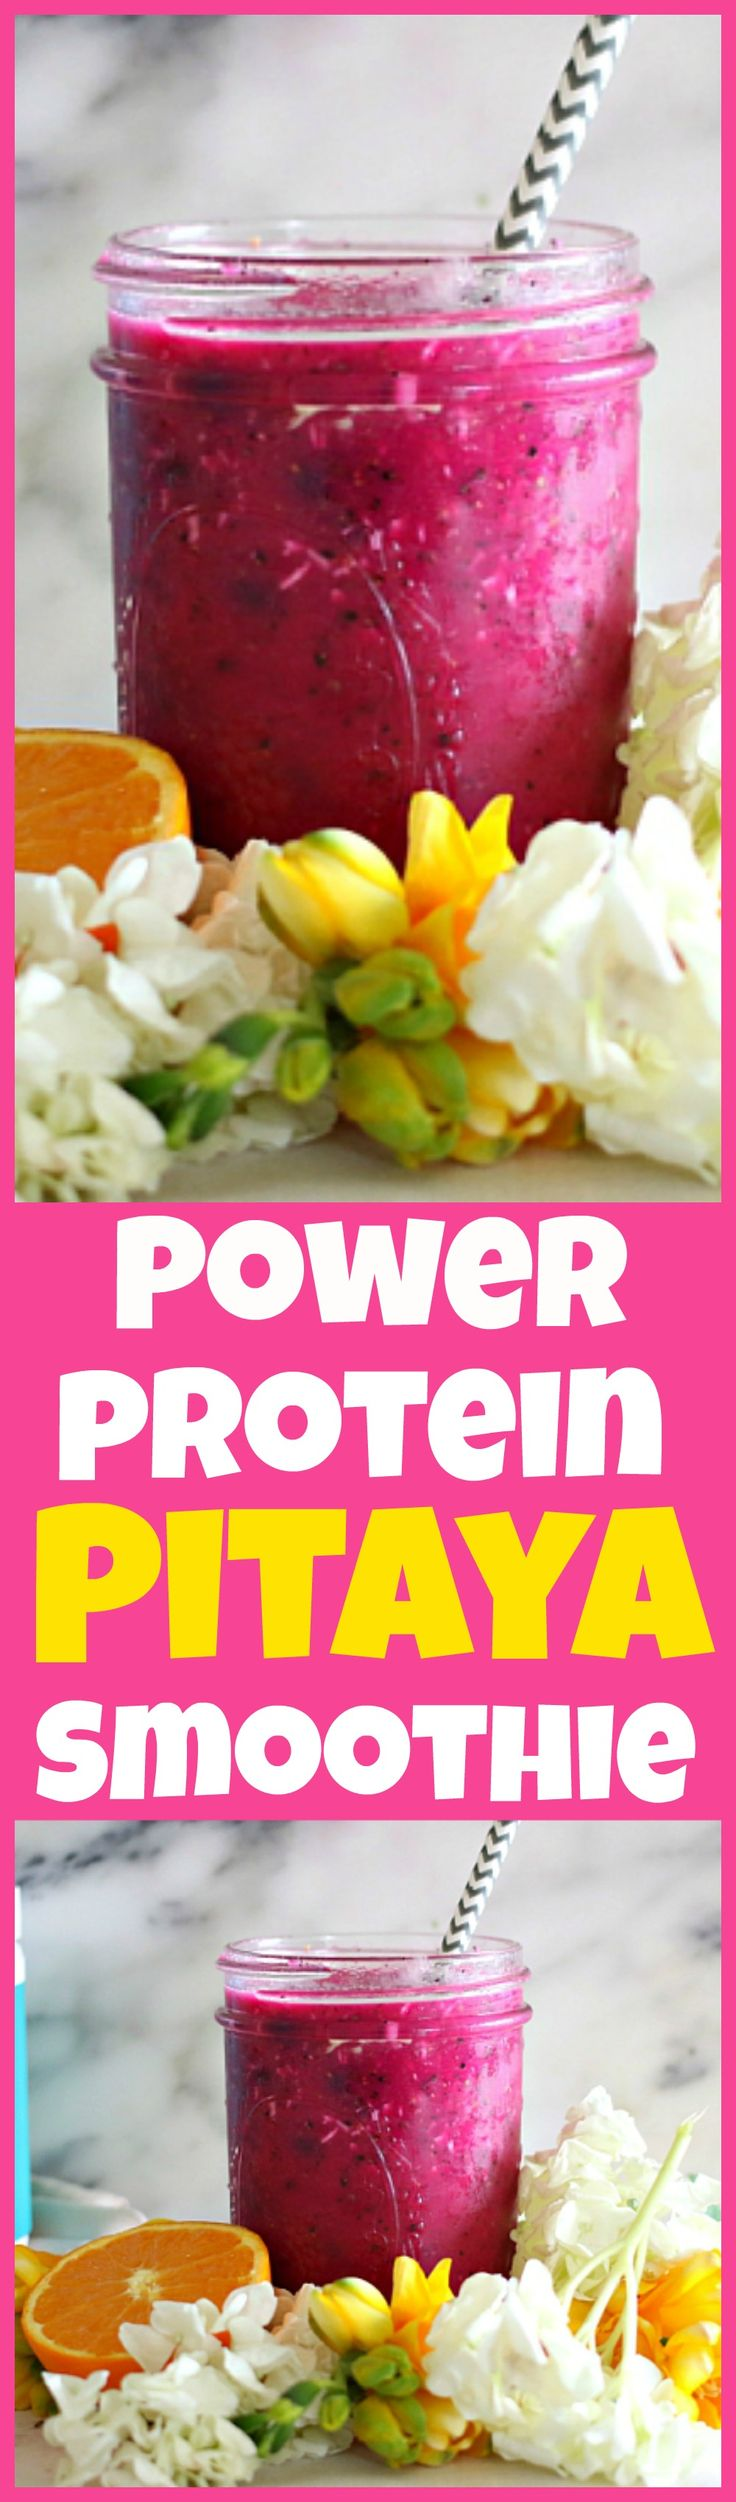 http://www.furtherfood.com/recipe/power-protein-pitaya-smoothie-dragon-fruit-further-collagen-antioxidant-rich/